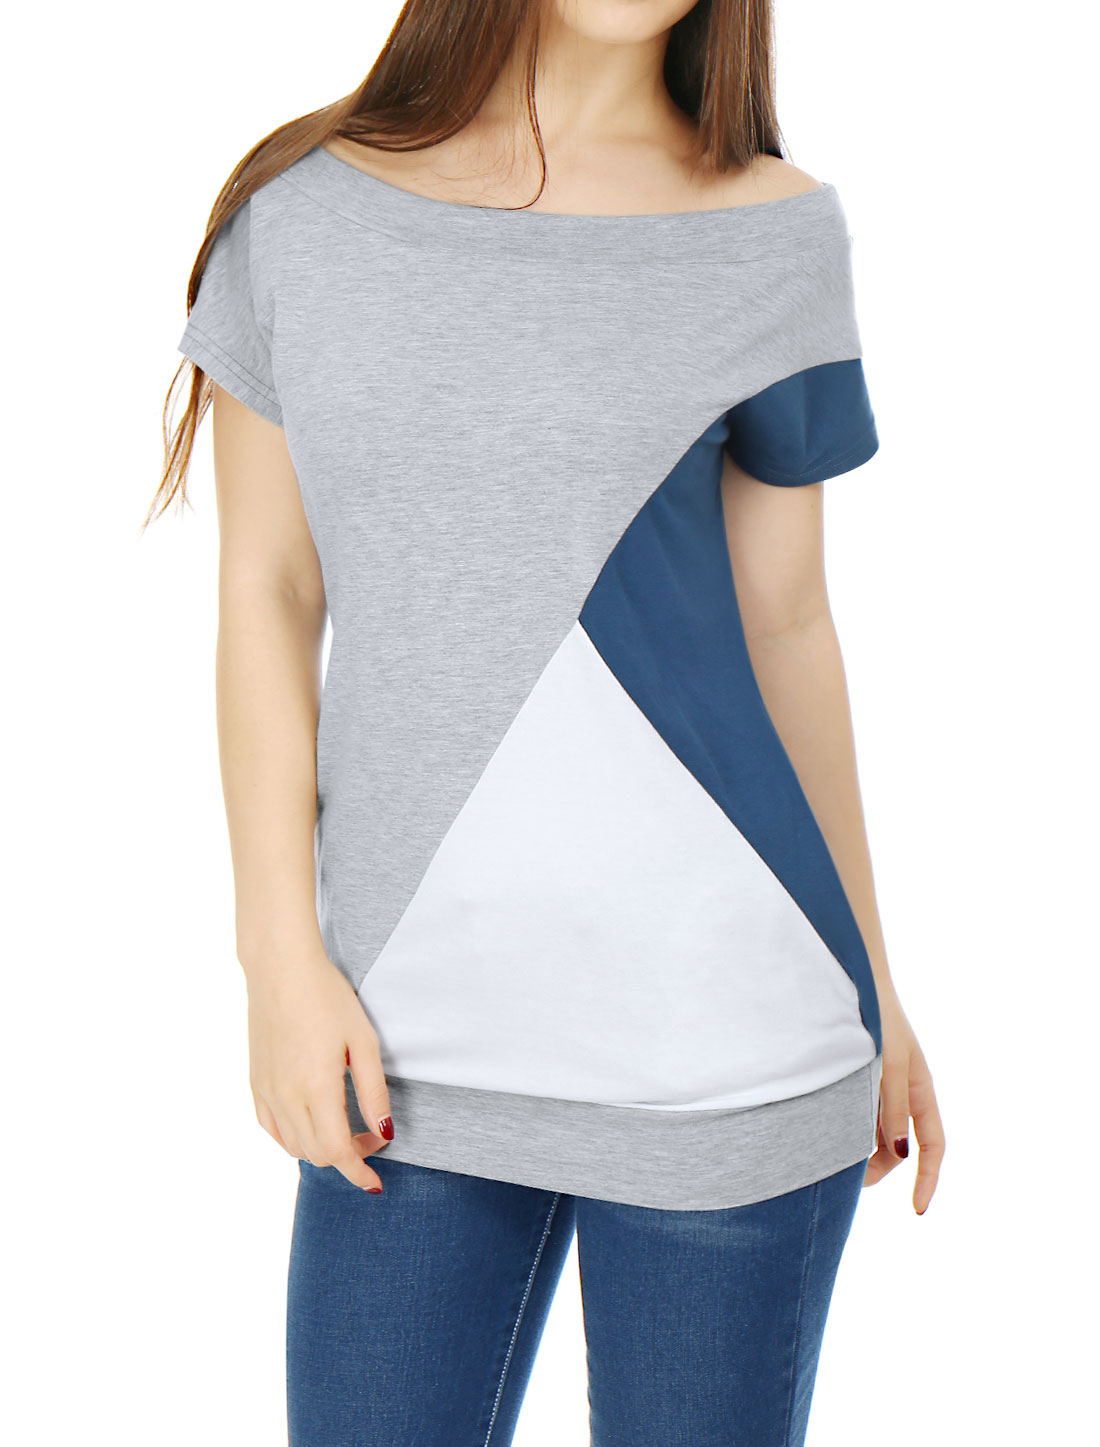 Women Boat Neck Batwing Sleeves Color Block Tunic Top Gray L